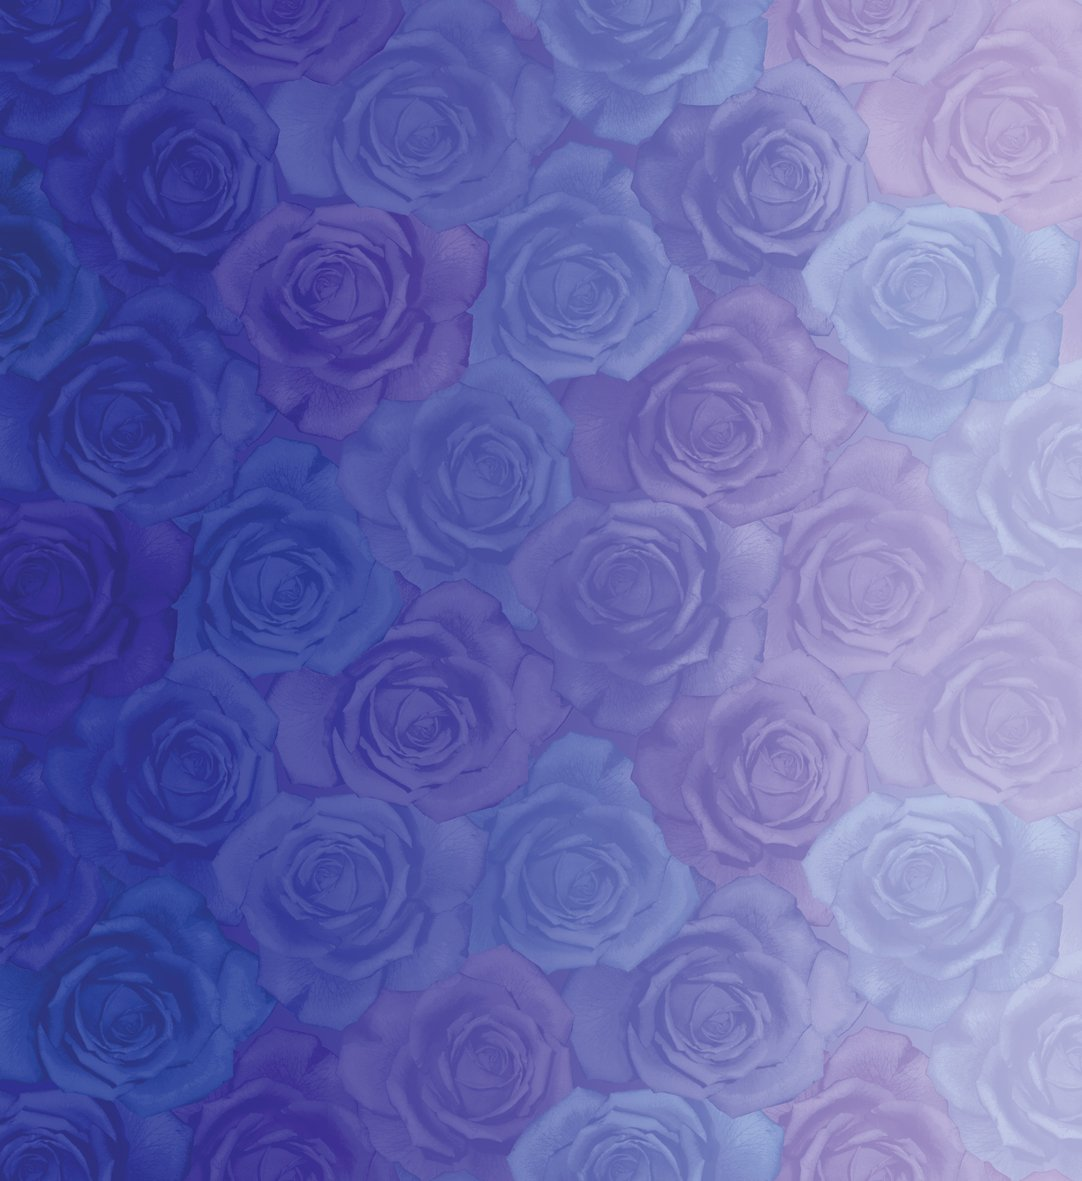 Gradients Roses Blues